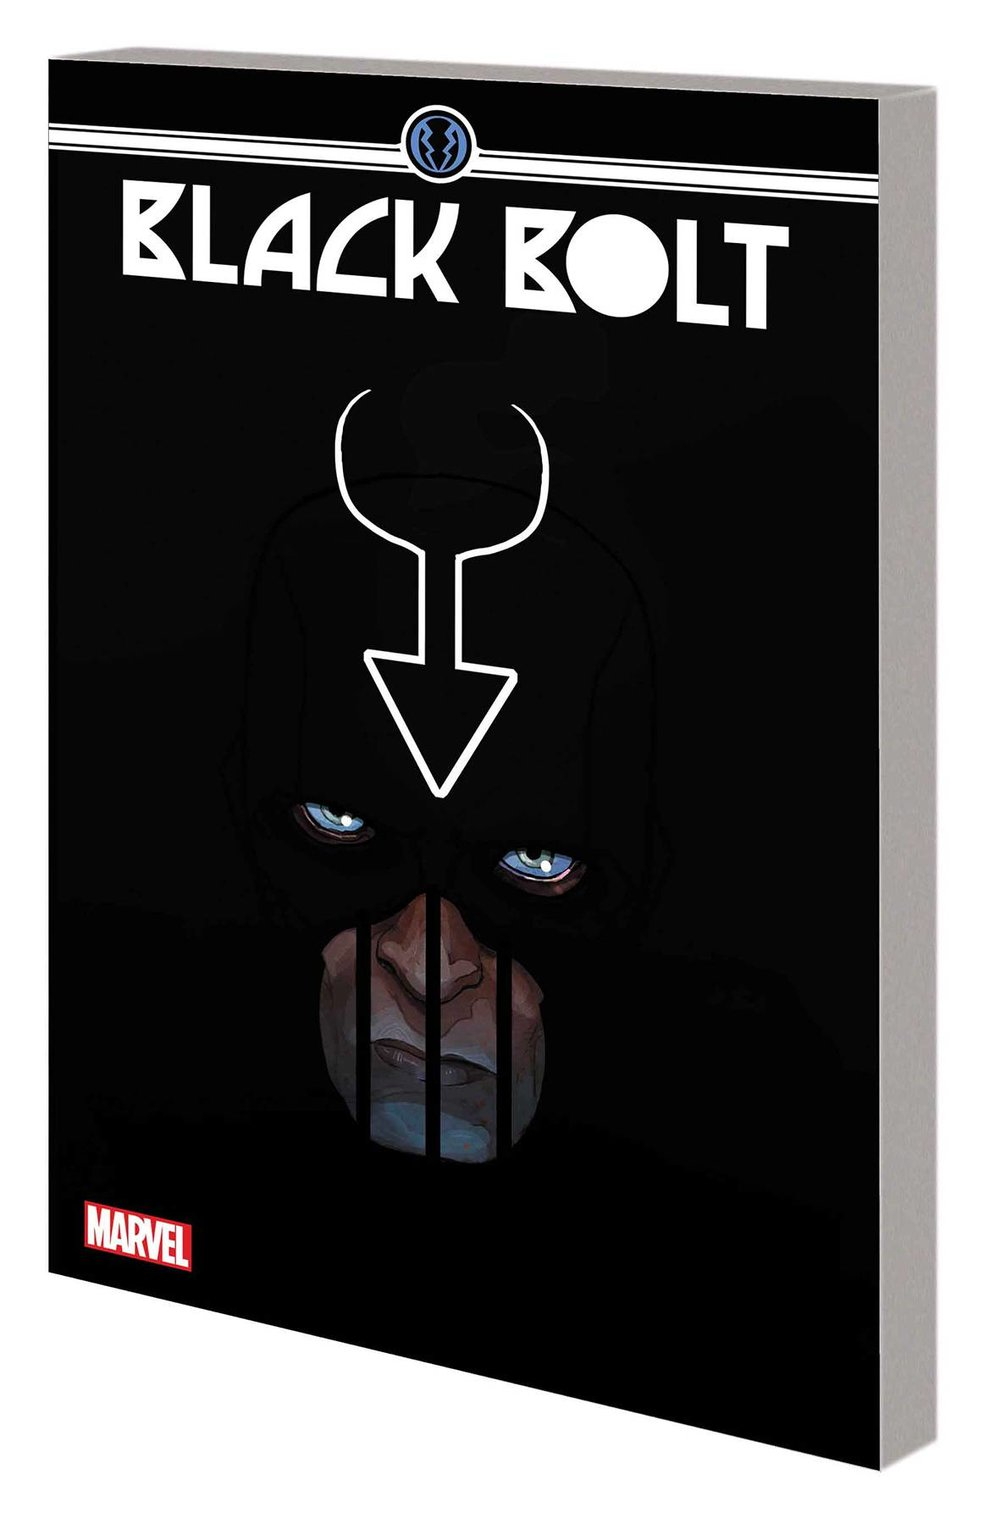 Black Bolt by Saladin Ahmed and Christian Ward